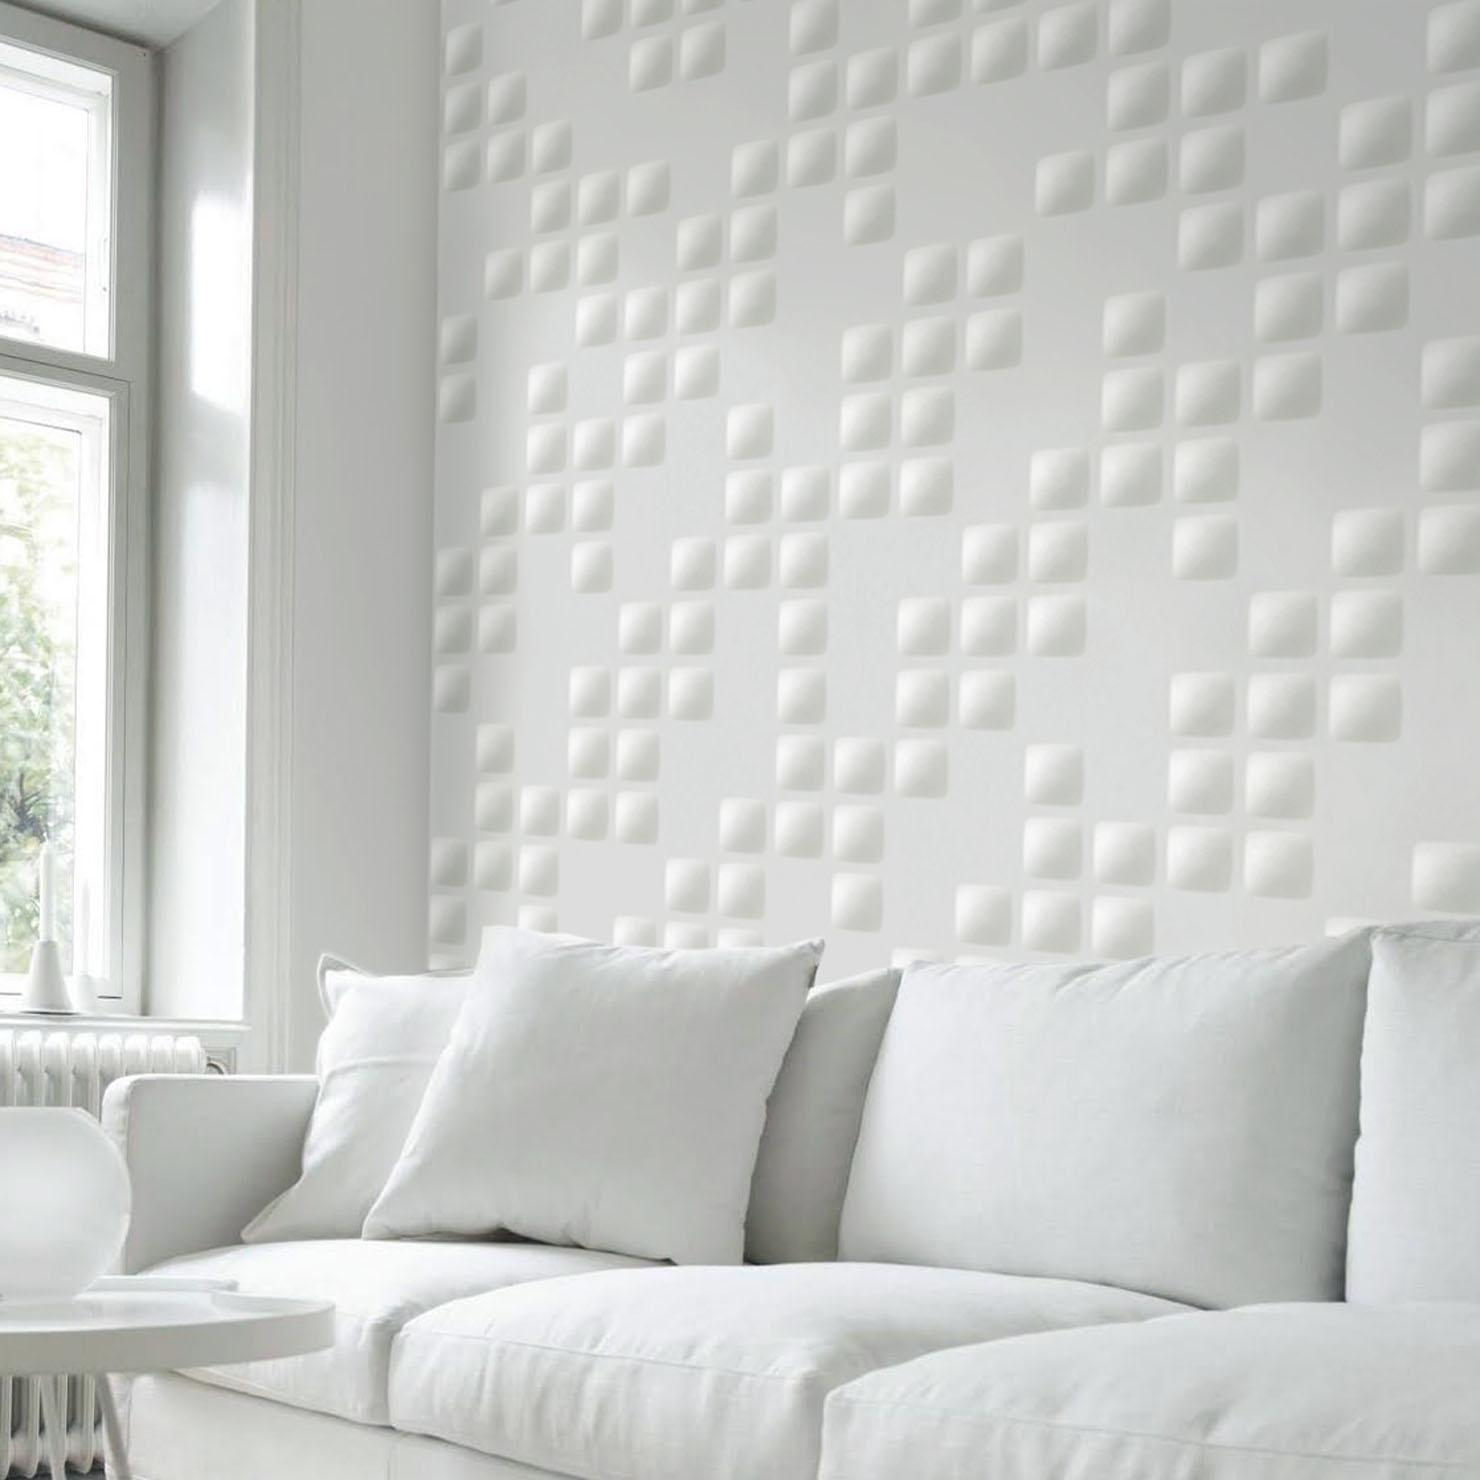 Pixels 3D Wall Panels | iVIP BlackBox